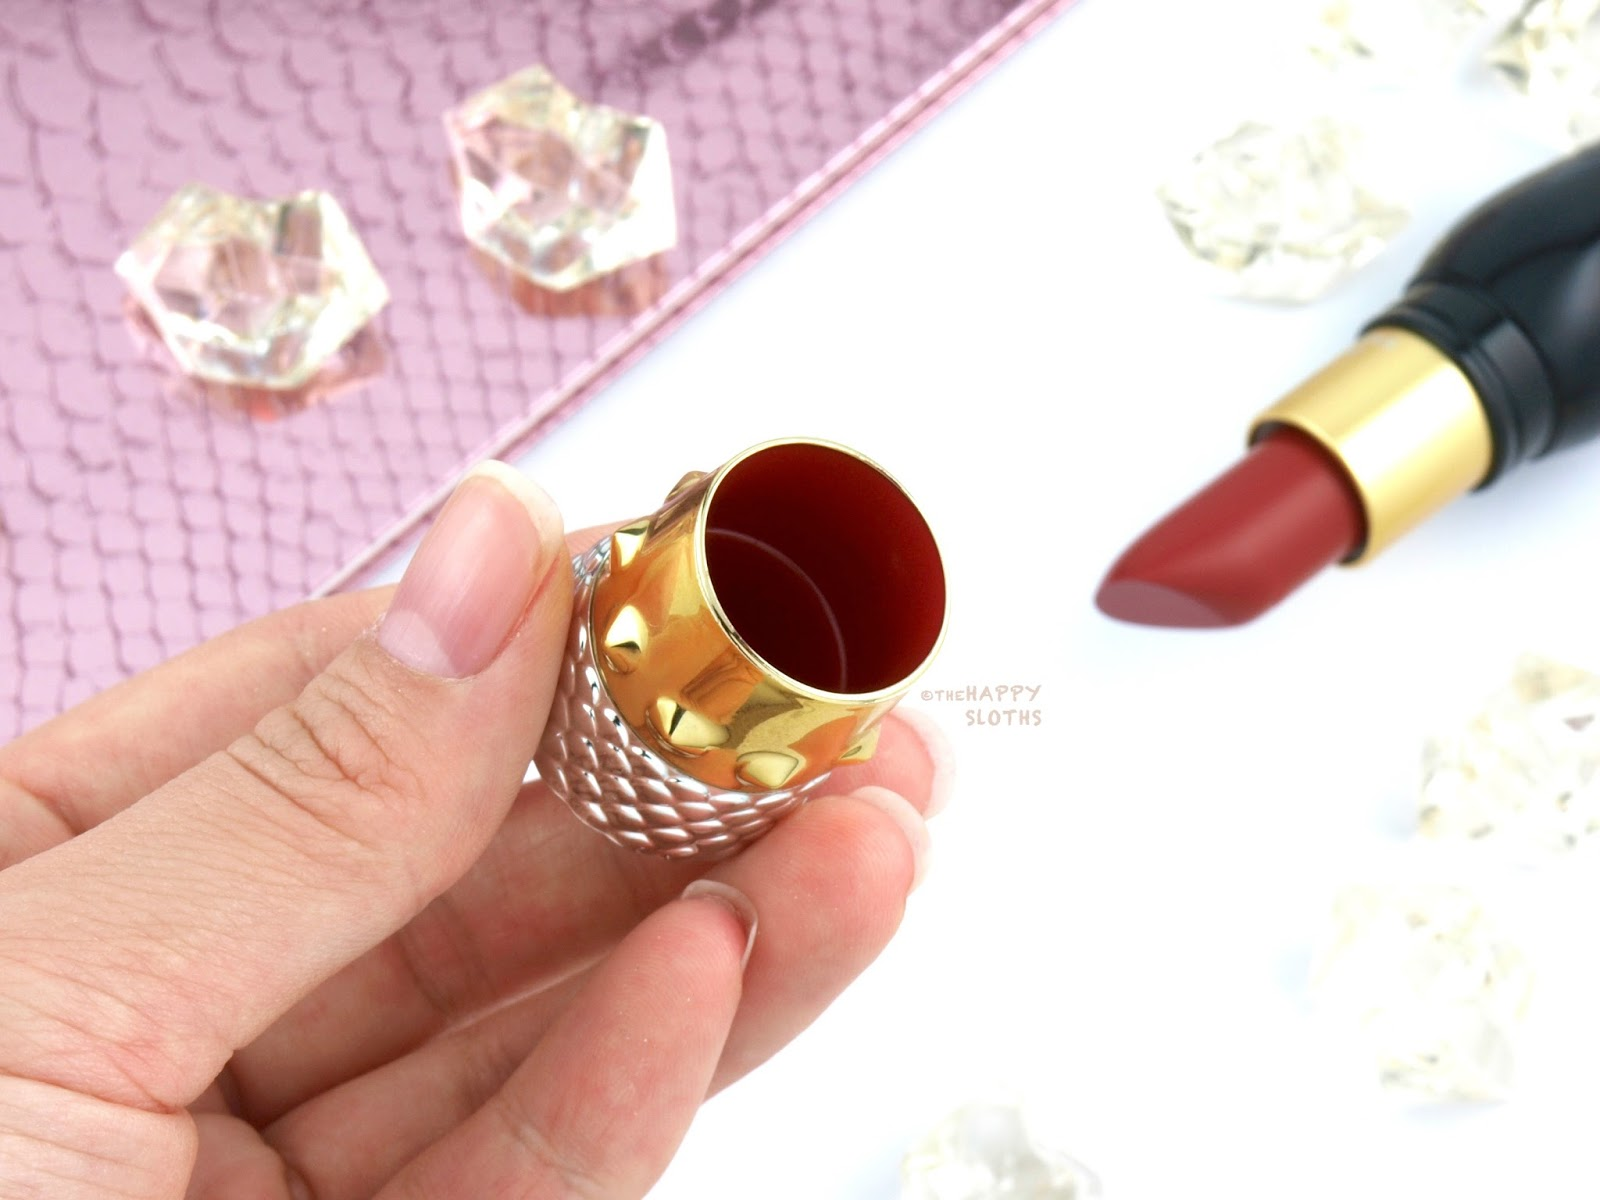 Christian Louboutin | Rouge Louboutin Silky Satin Lipstick: Review and Swatches